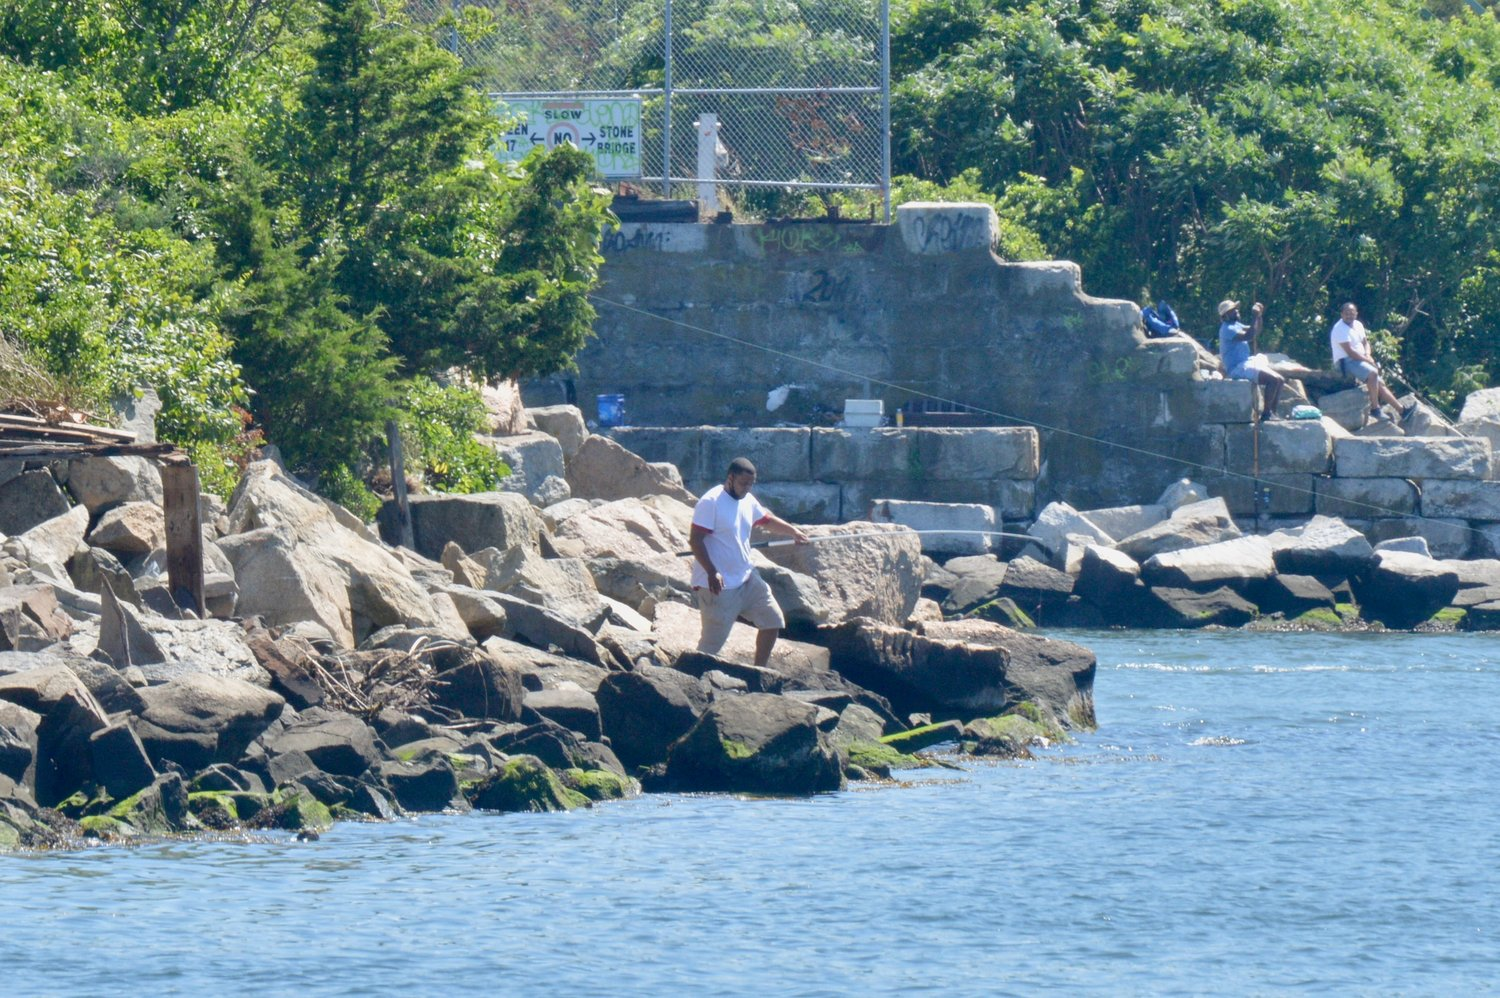 "Visitors fish from the rocks off the railroad tracks near the Sakonnet River Bridge. ""They're coming down here with babies, children. If any one of those kids fell off from those rocks and into the water, I don't know if anyone could get to them,"" said Vicky Newbold, who lives under the bridge."